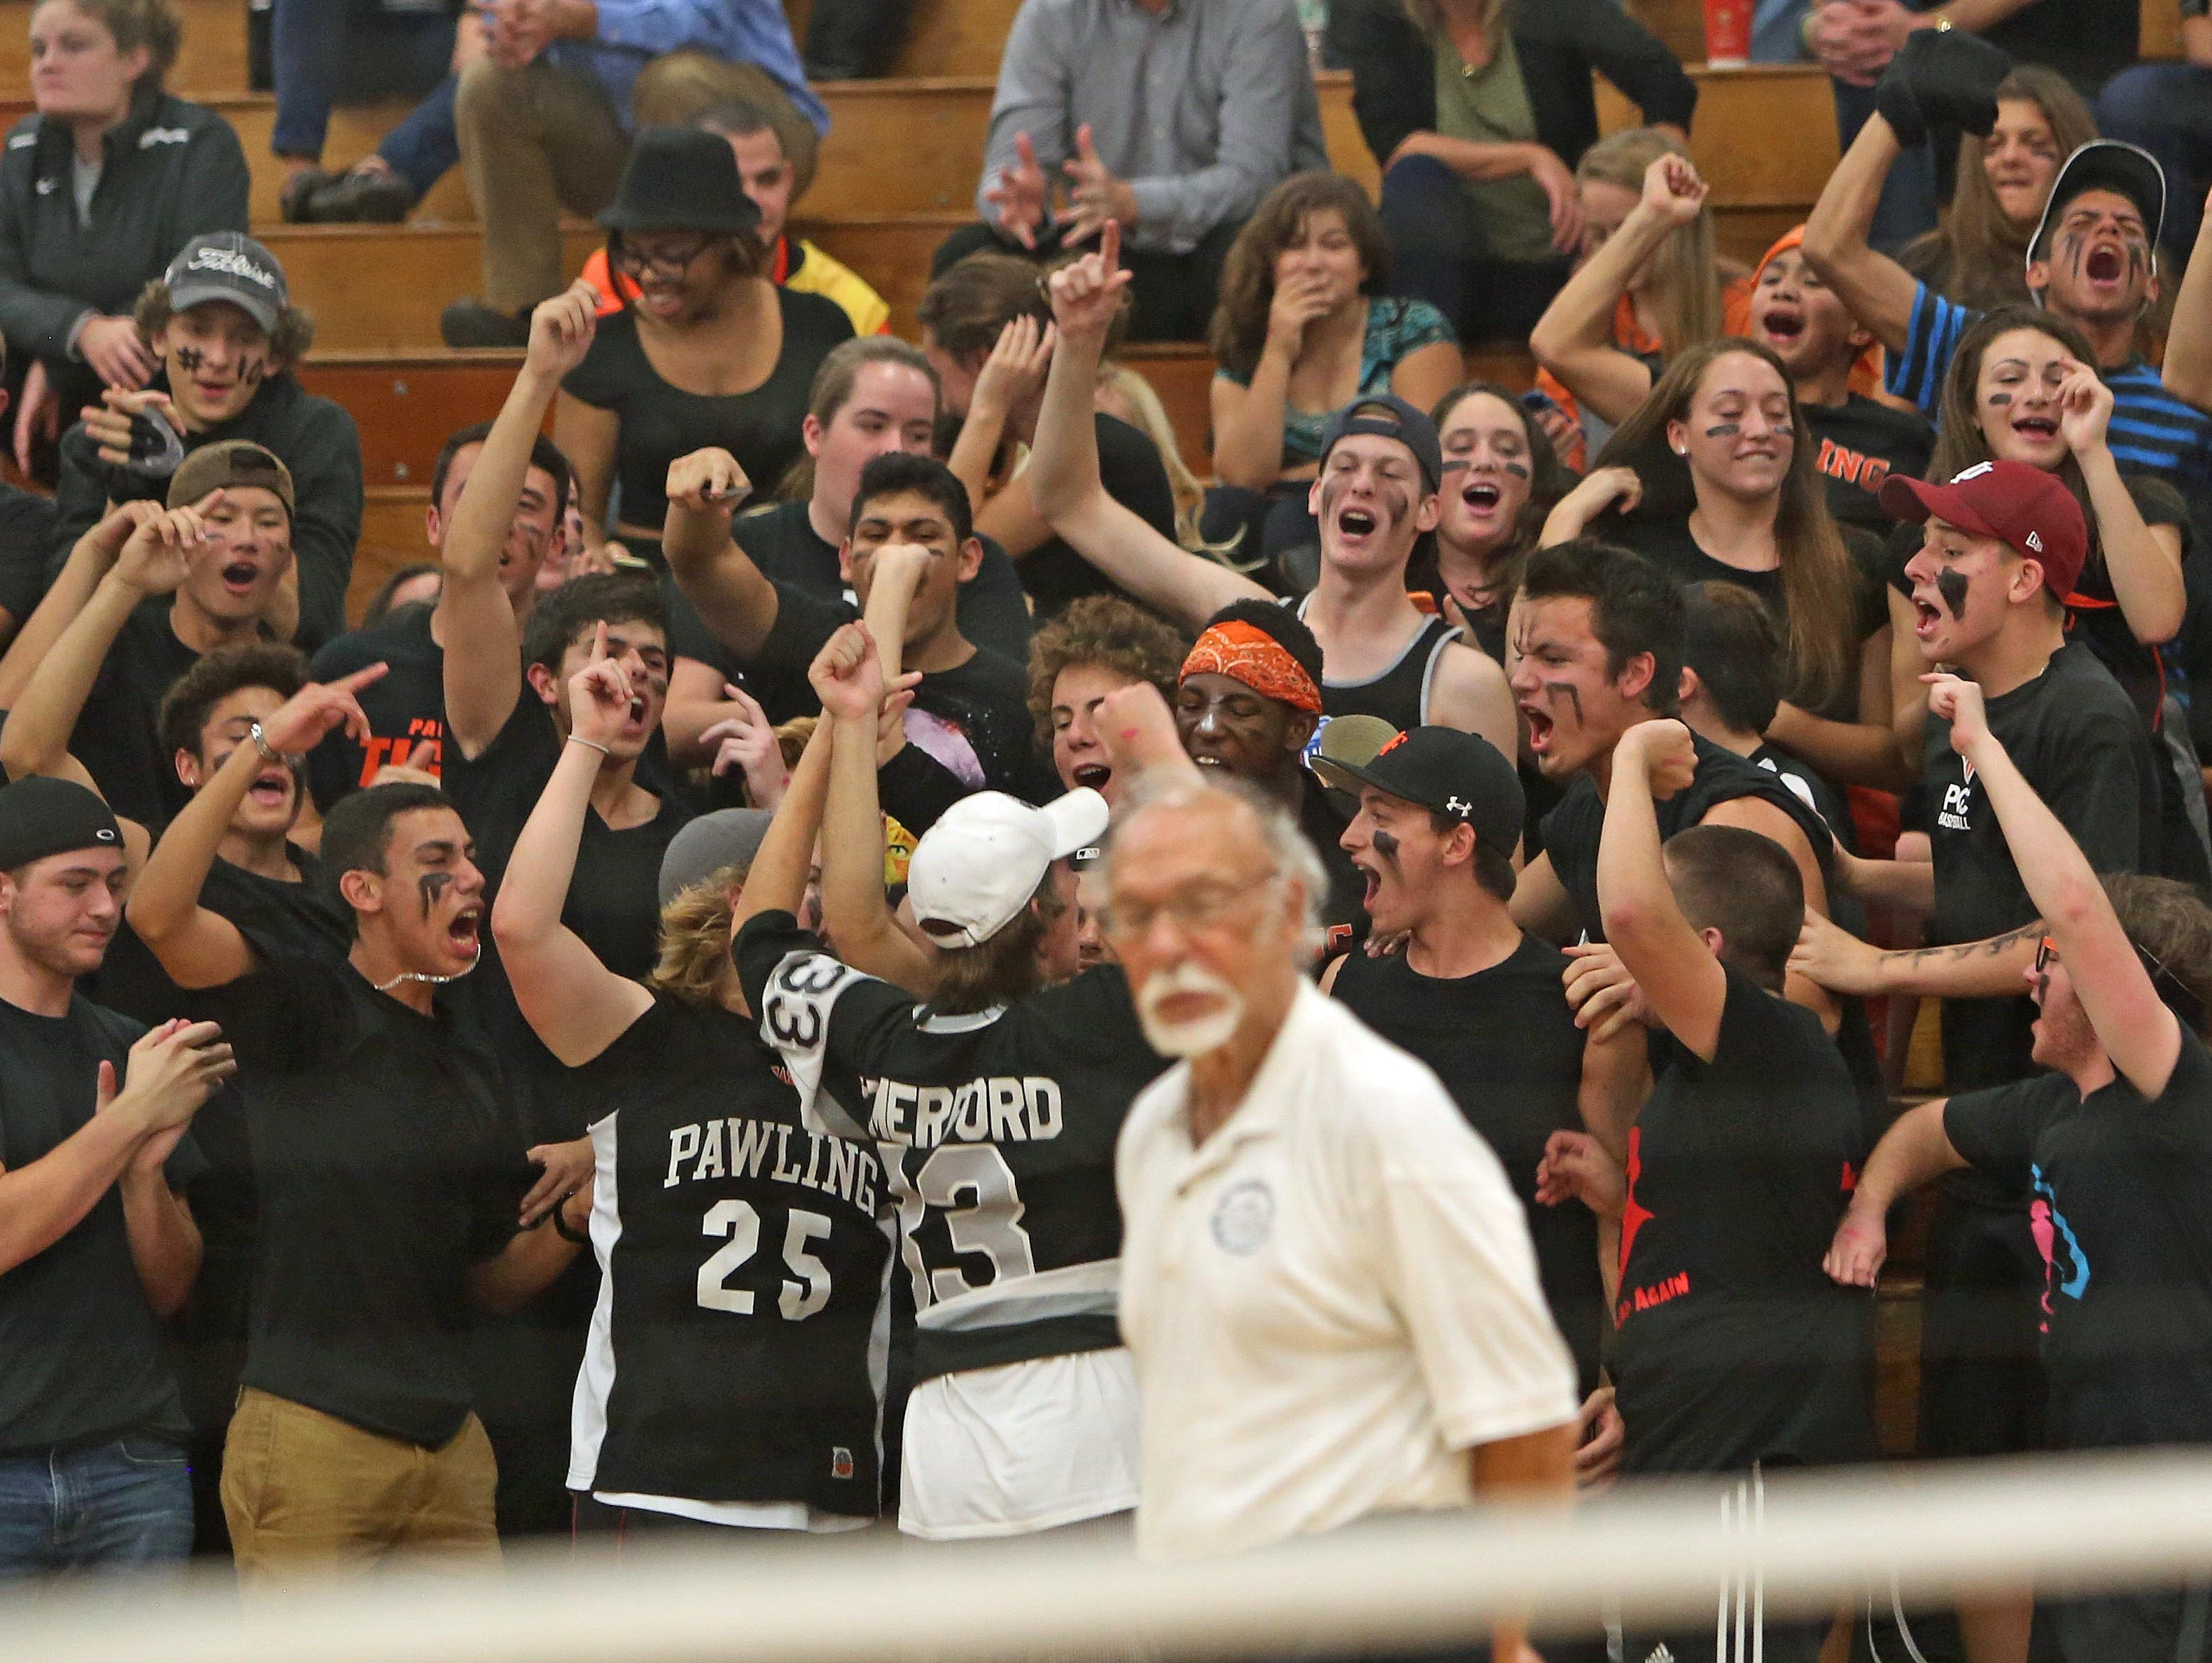 Pawling defeated Dobbs Ferry in the Section 1 Class C playoff championship at Hendrick Hudson High School in Montrose Nov 6, 2015.